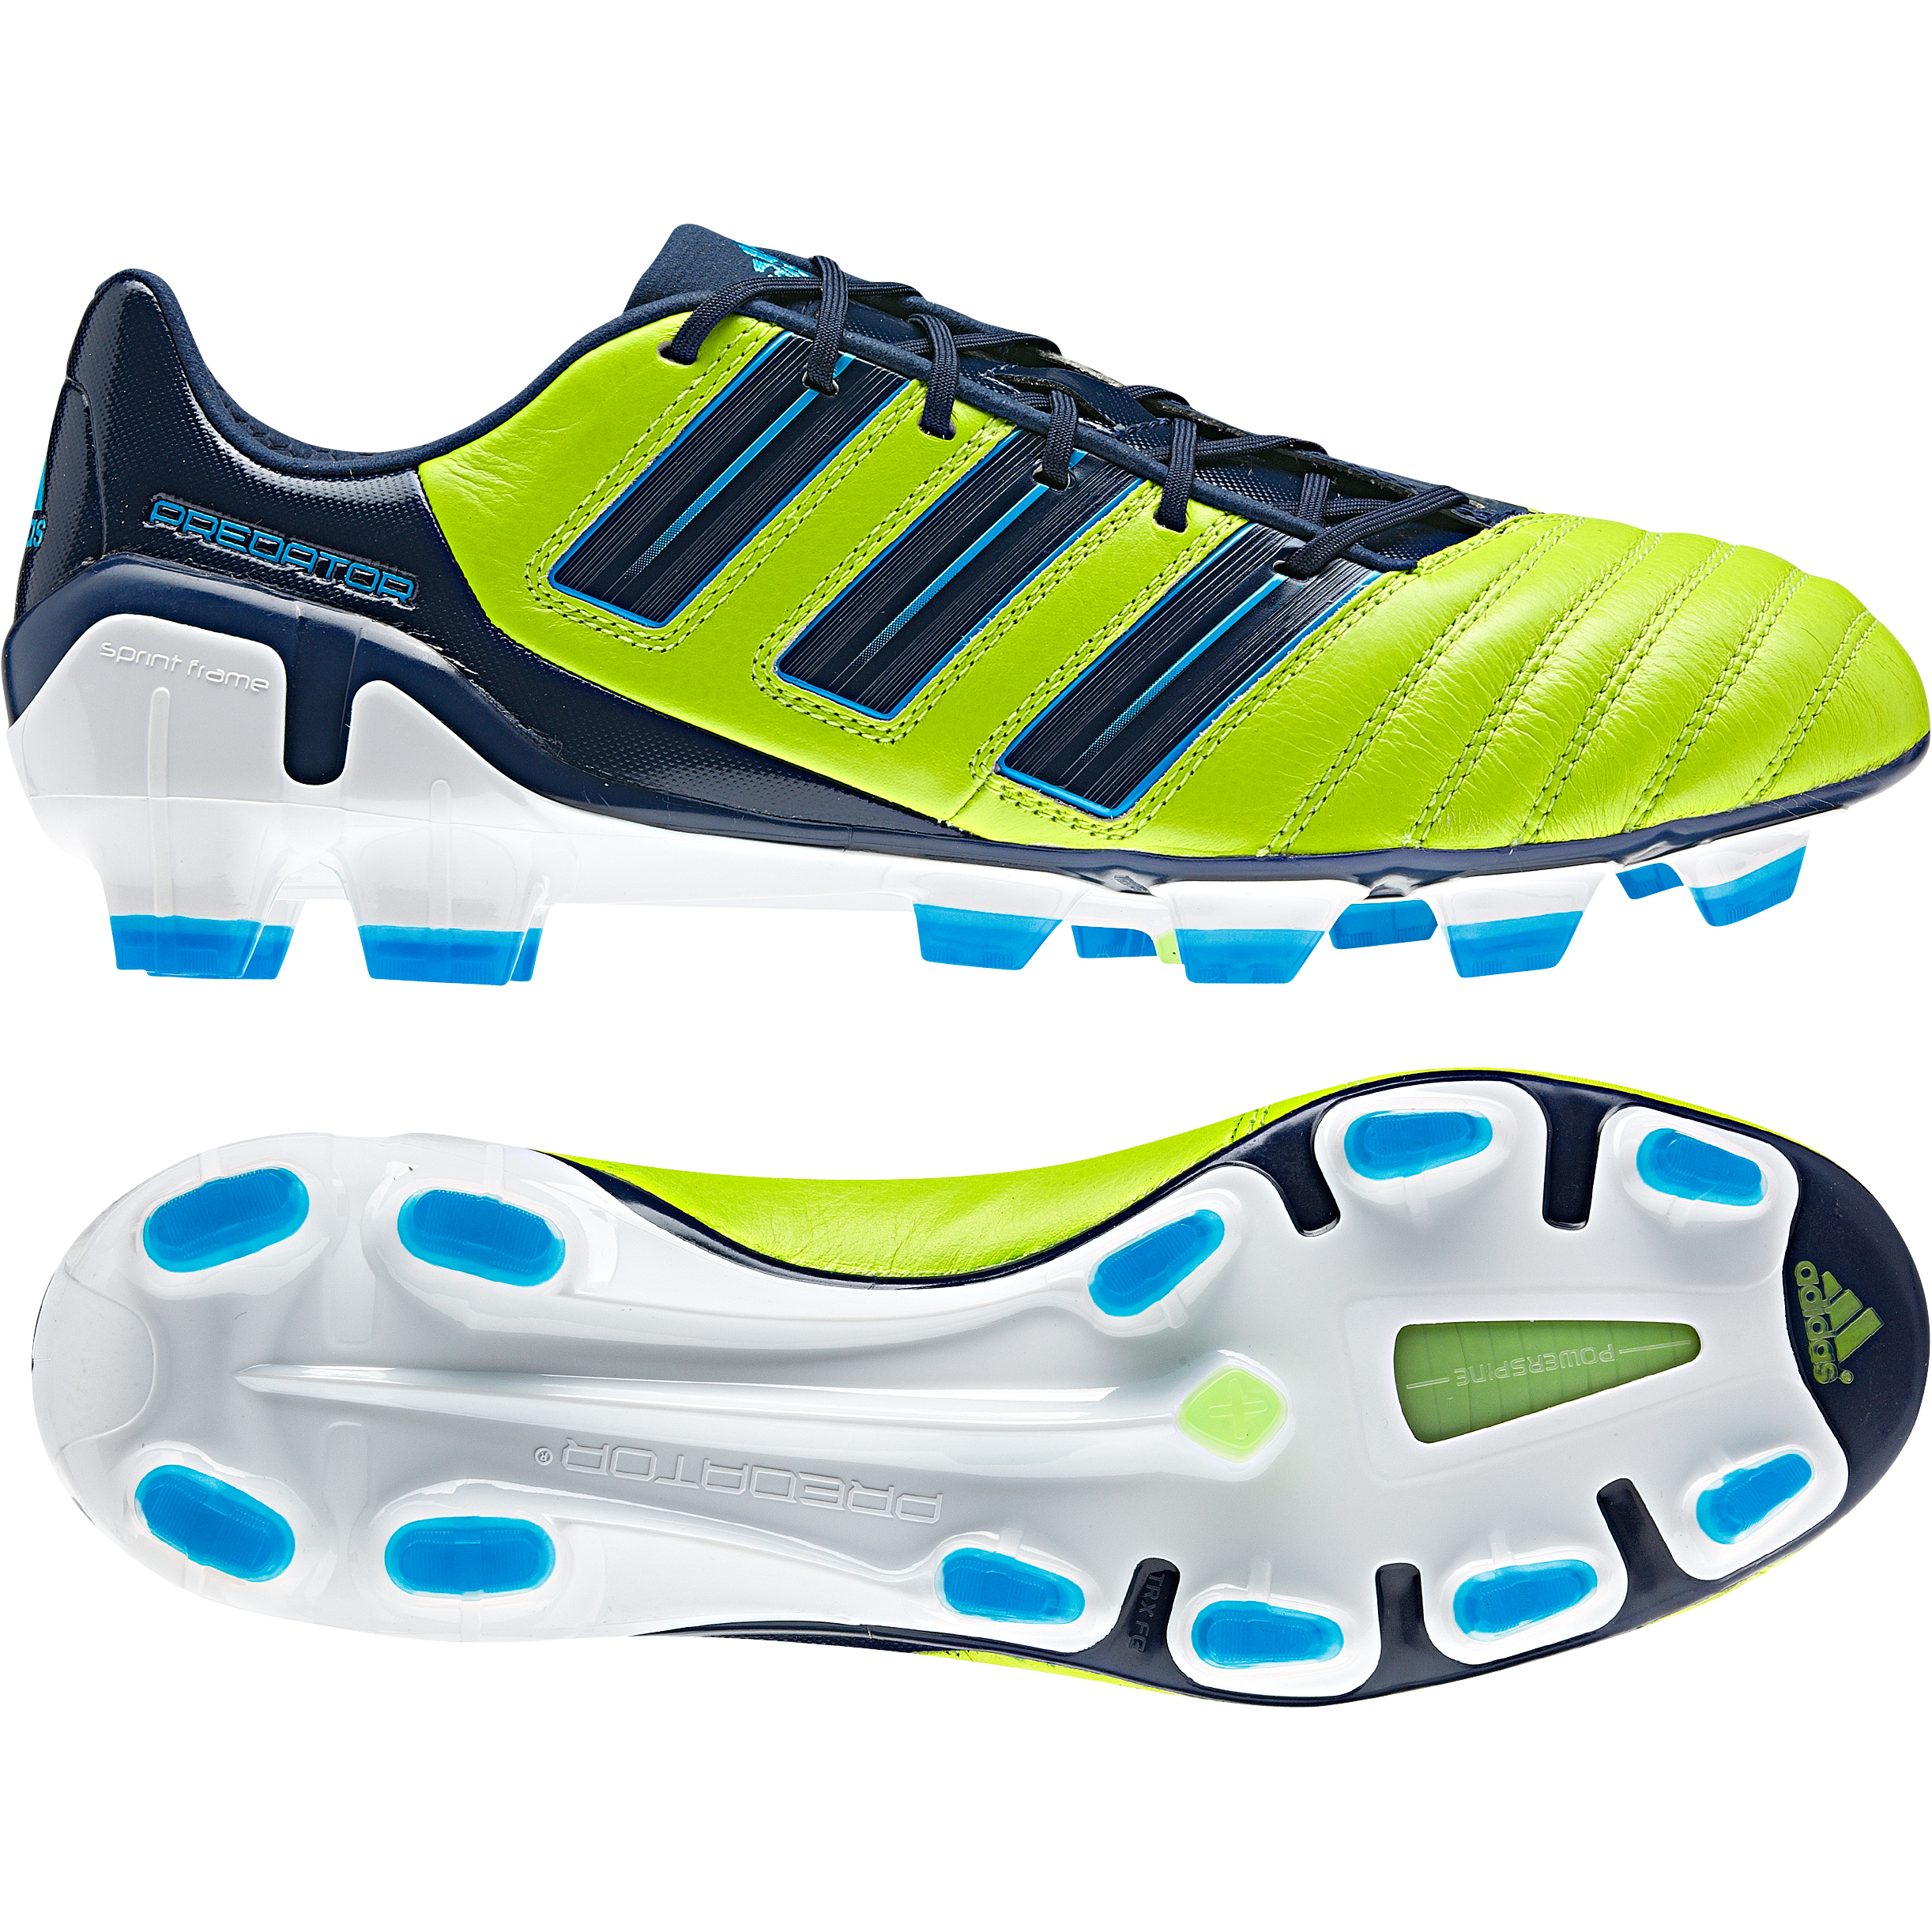 adidas adipower Predator TRX Firm Ground Football Boots - Slime / Dark Indigo / Pred Sharp Blue Met